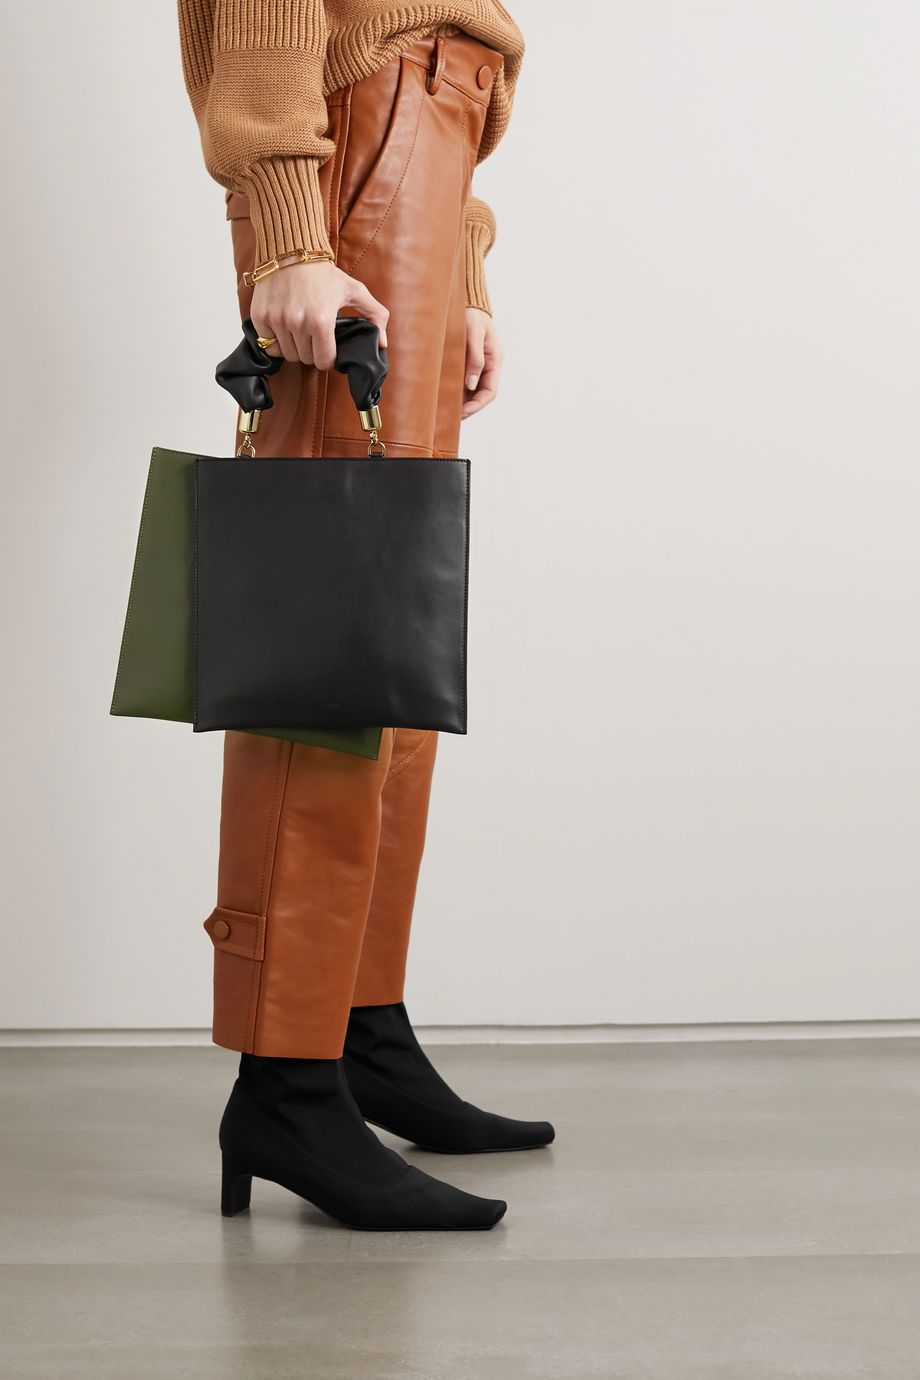 The Sant Obi two-tone leather tote